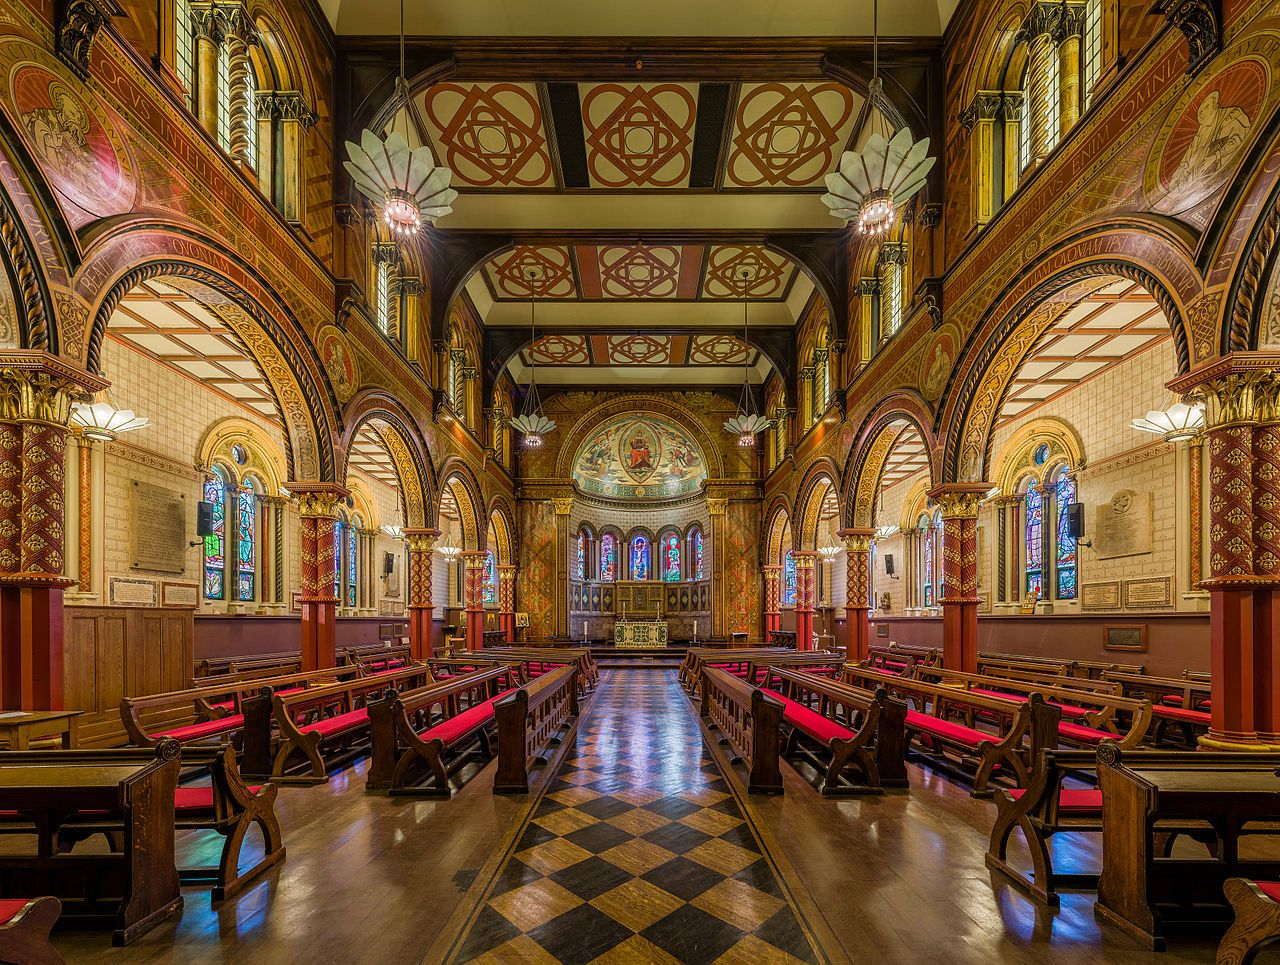 Image may contain: Couch, Worship, Church, Furniture, Chair, Indoors, Aisle, Building, Architecture, Altar